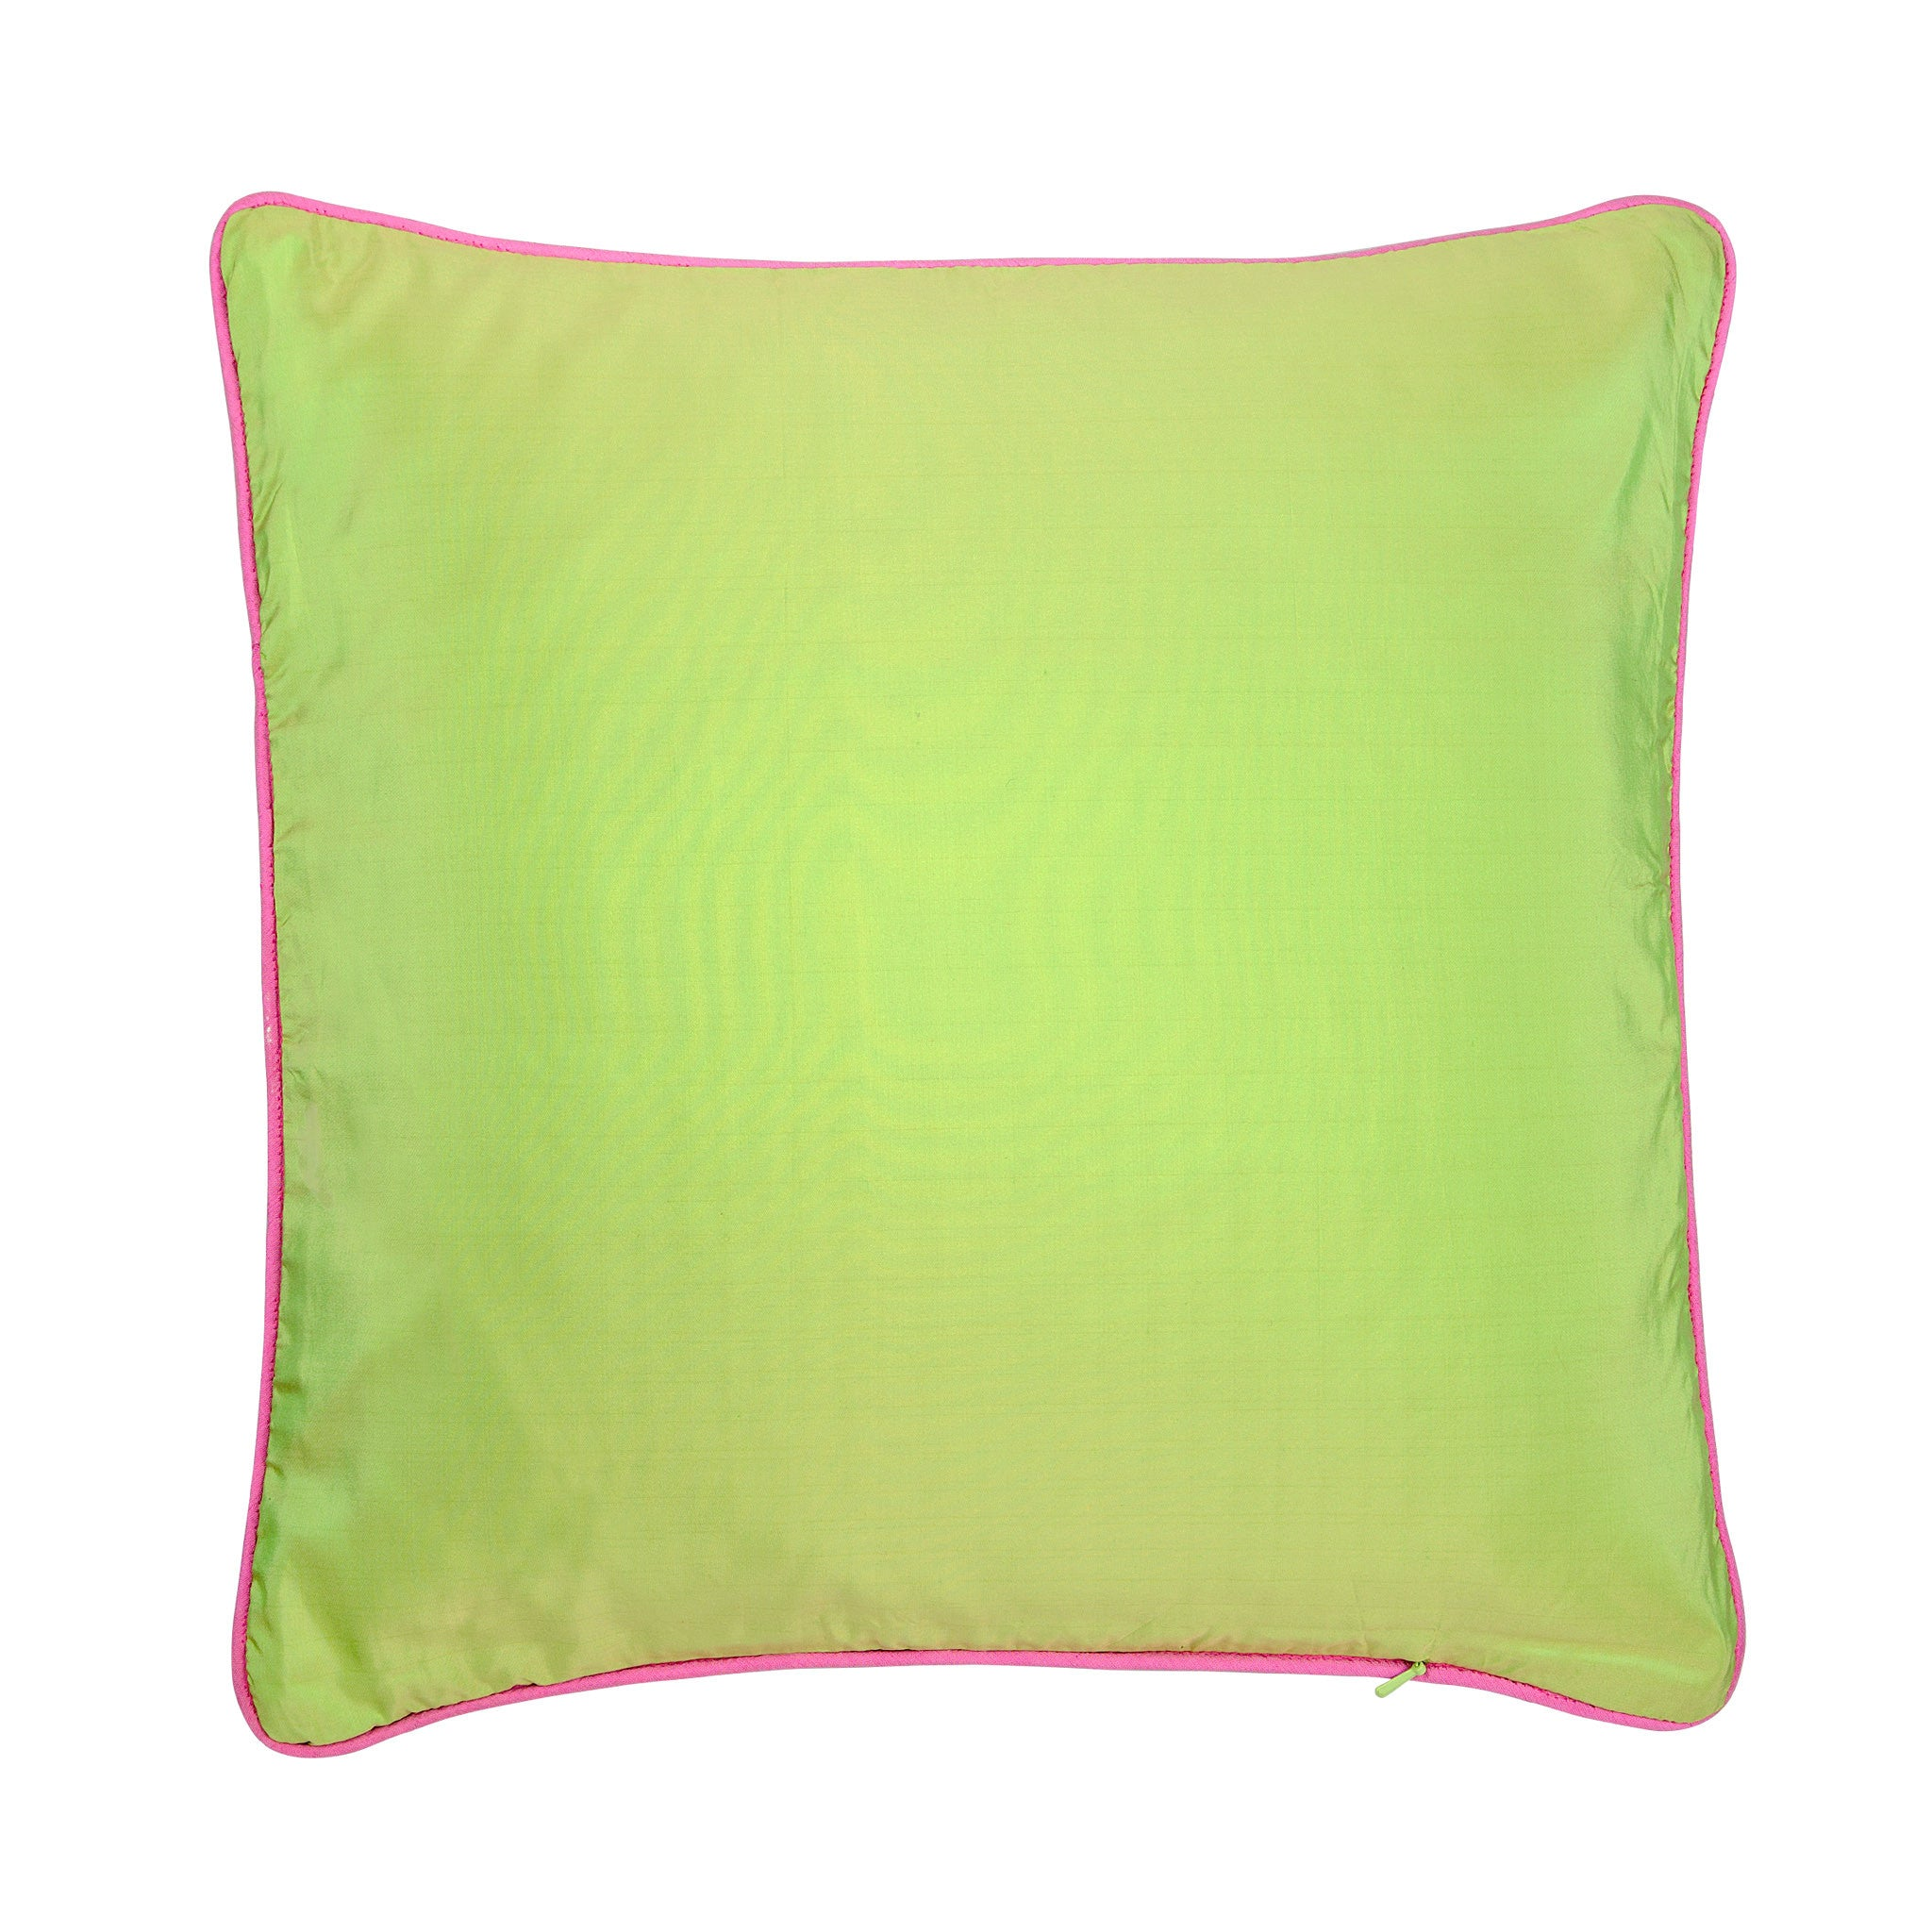 Silk twill pink & green mosaic print cushion - Bivain - 3